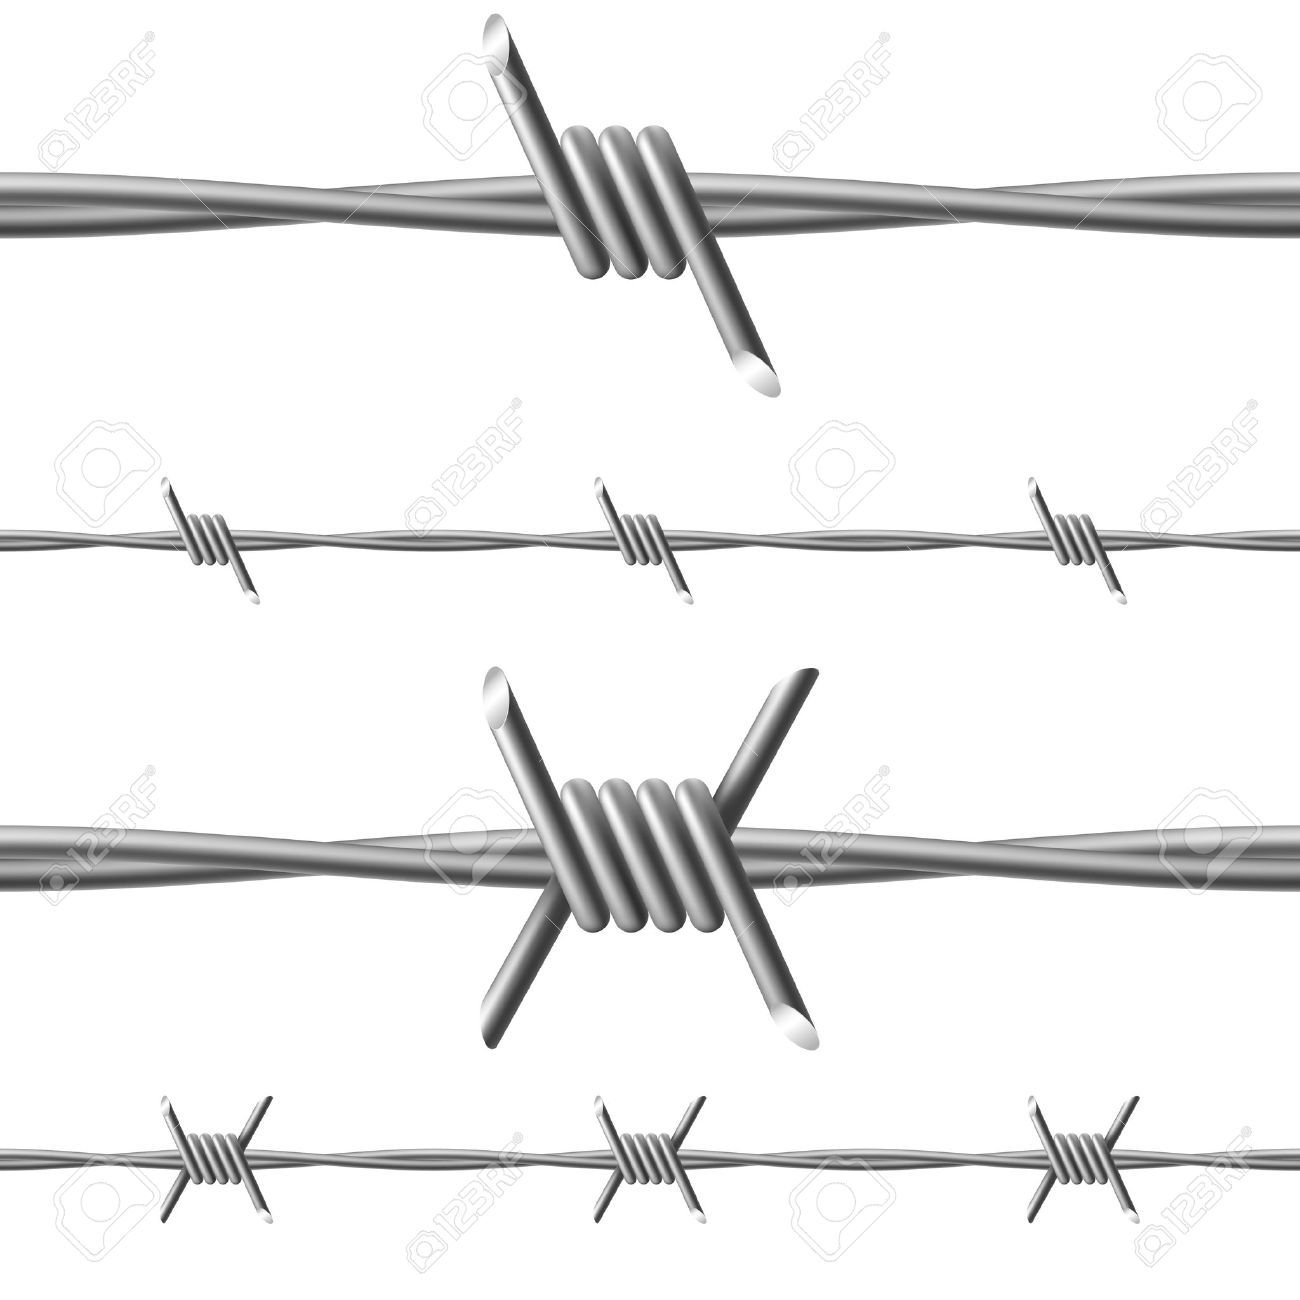 Barbed wire vector brush - Barbed Wire Illustration On White Background For Design Stock Vector 14447600